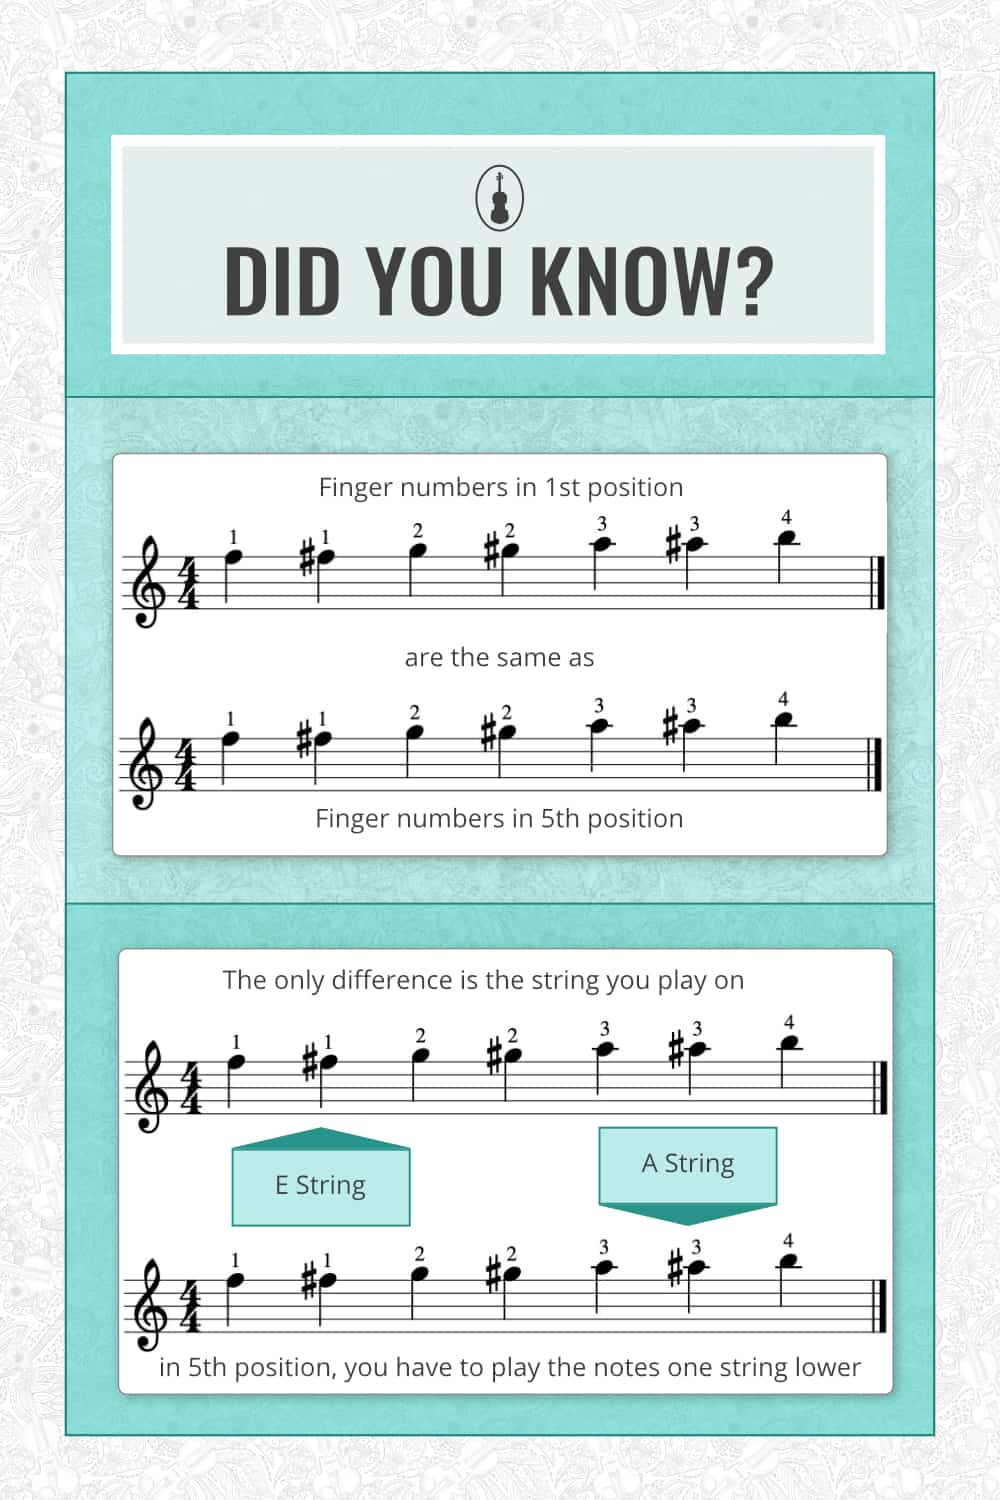 5th position on the violin - finger numbers